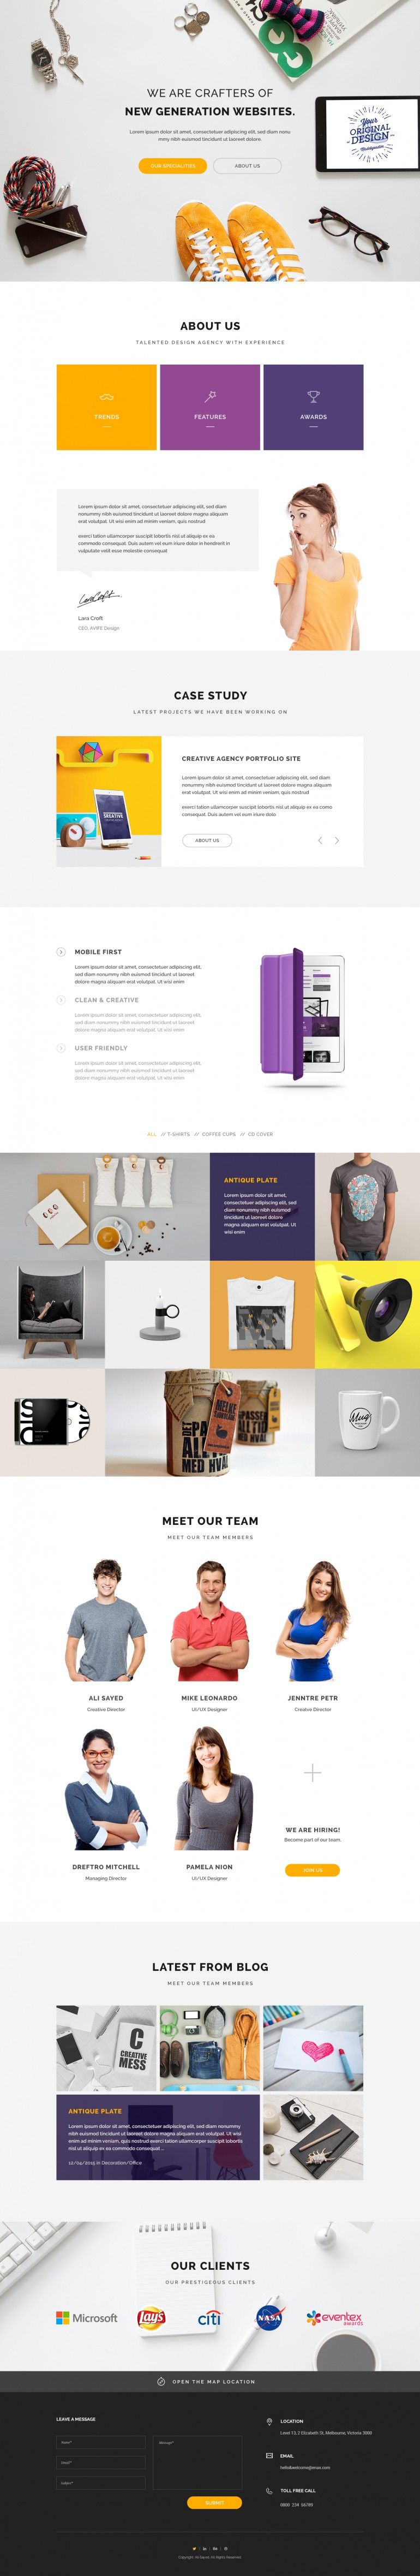 Home Page - Web Design Agency on | Graphic design studios, Web ...